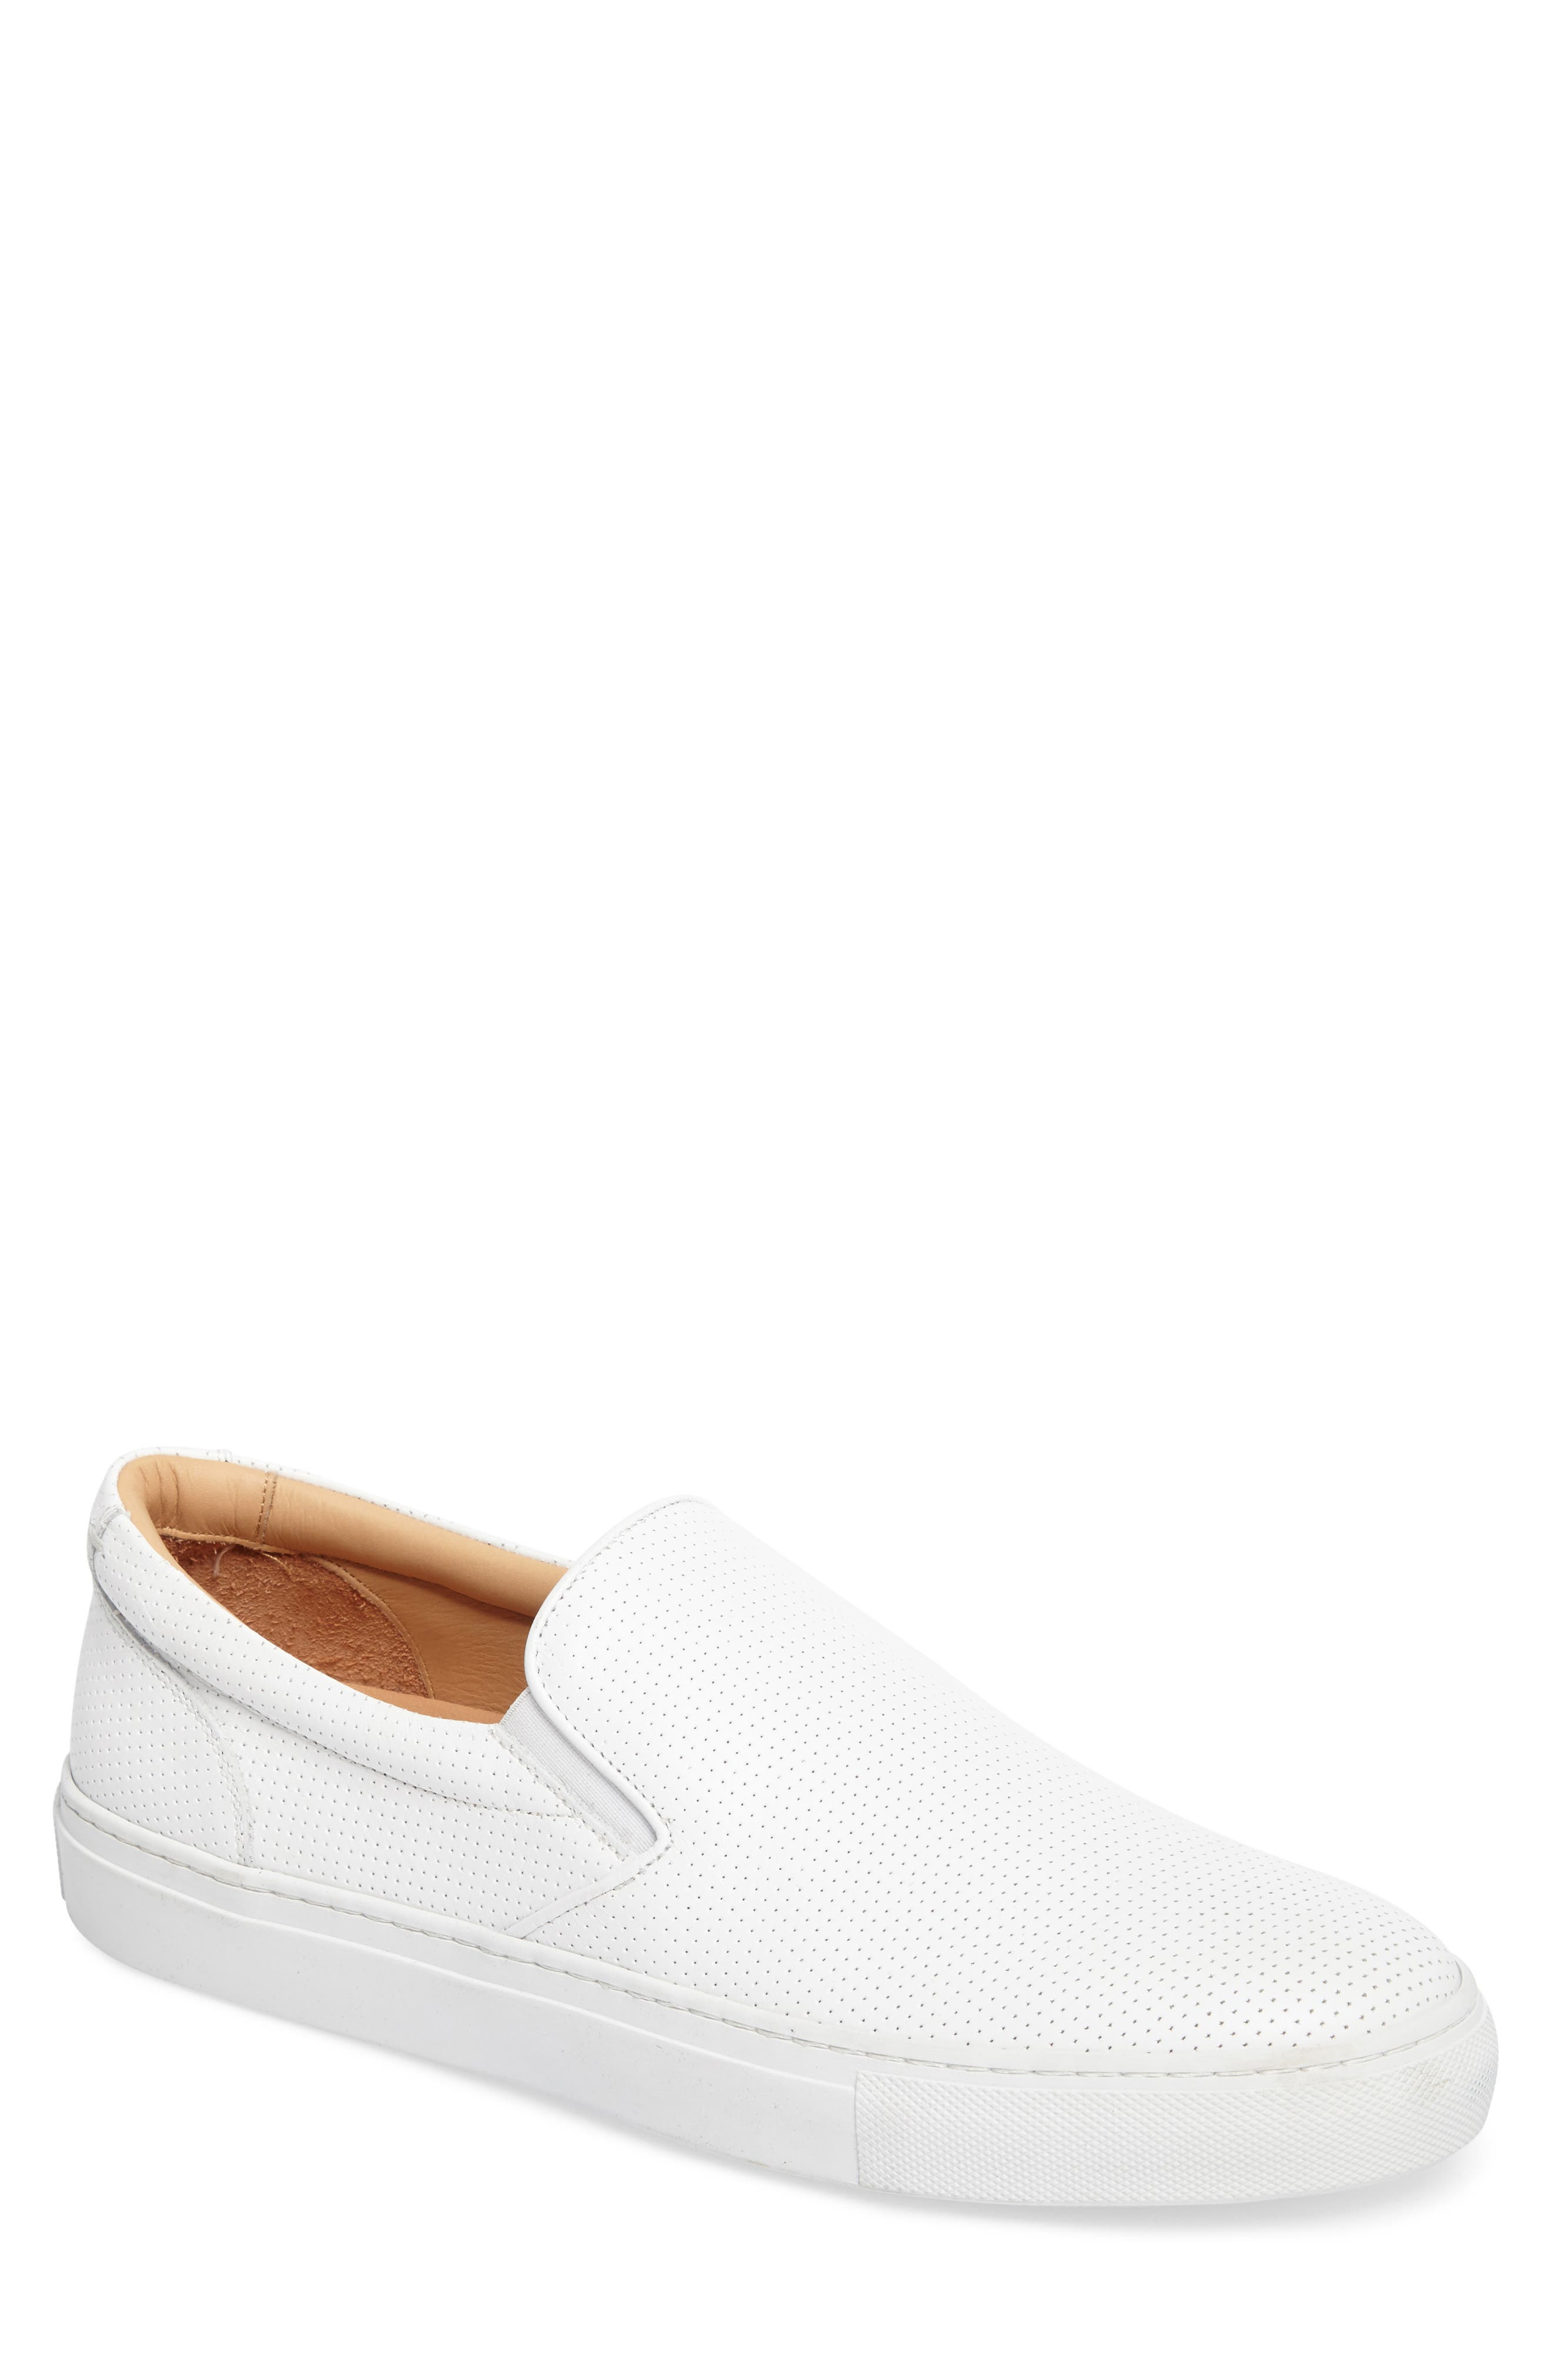 Wooster Slip-On Sneaker,                         Main,                         color, WHITE PERFORATED LEATHER